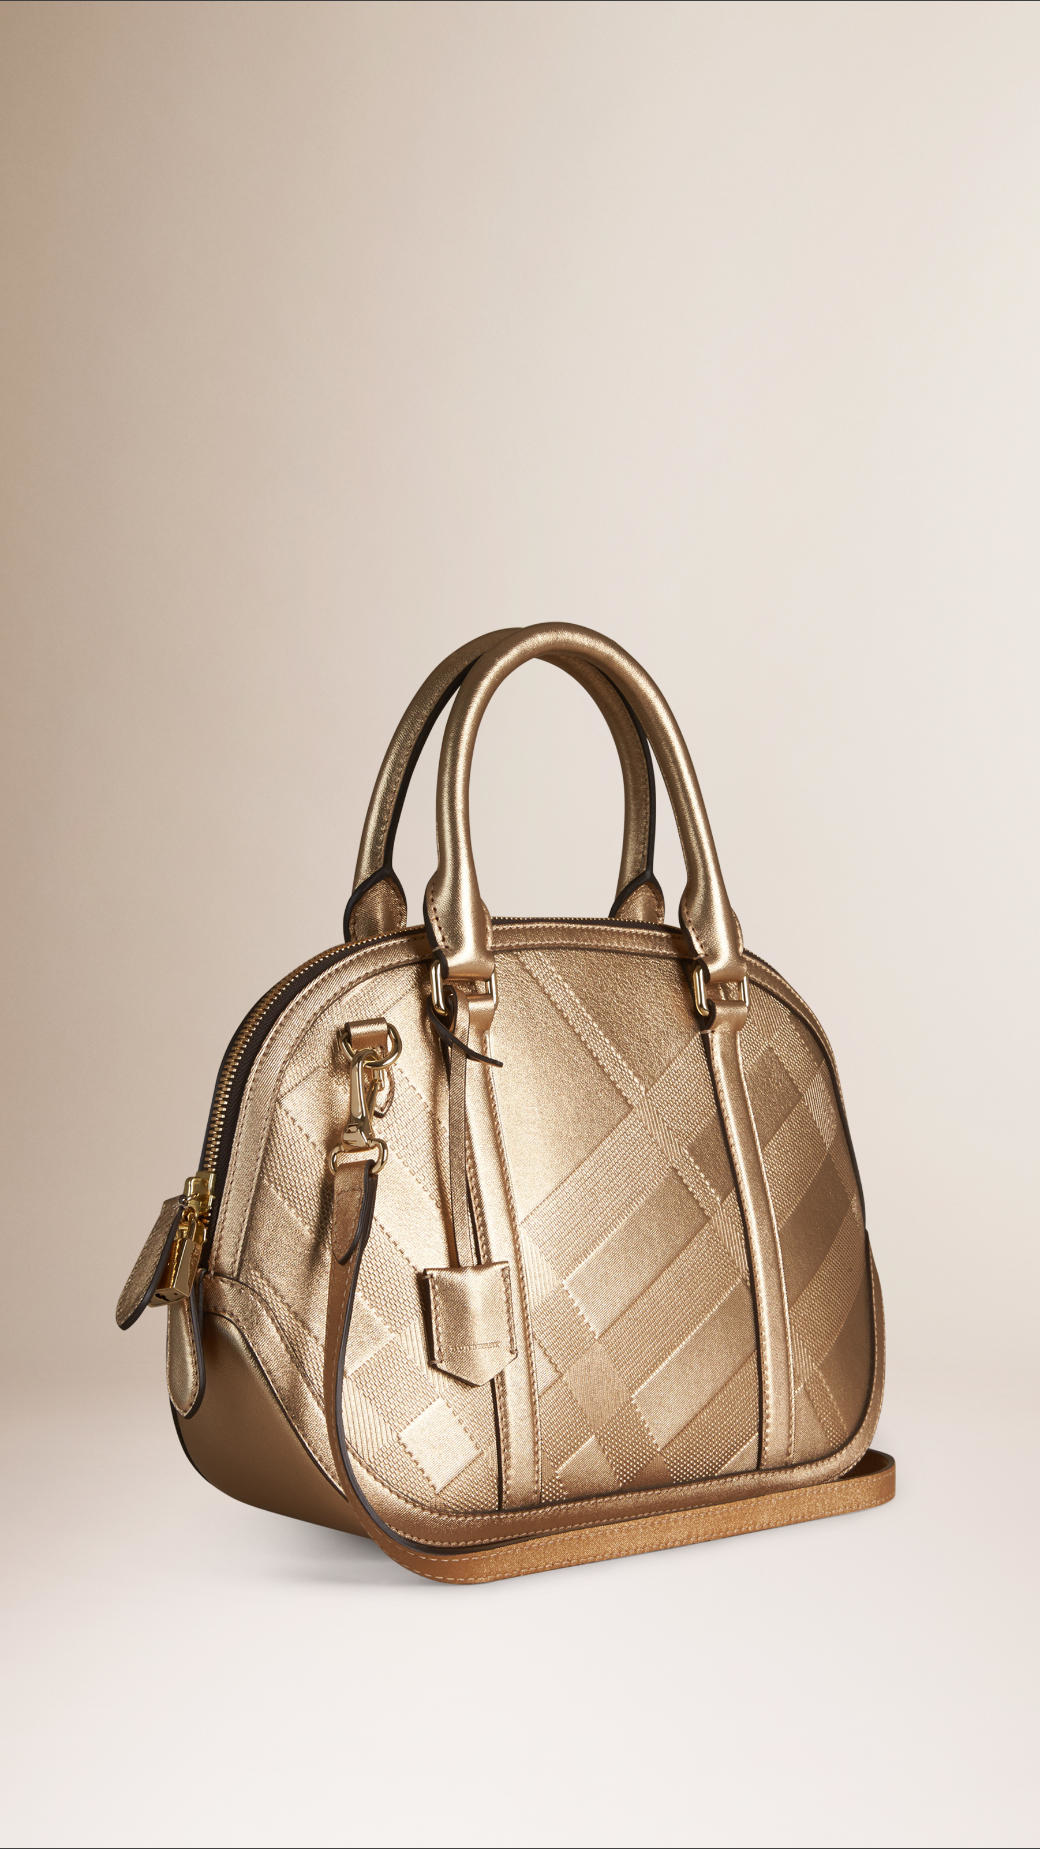 186b8d698f0a Lyst - Burberry The Small Orchard Embossed Check Leather Bag in Metallic